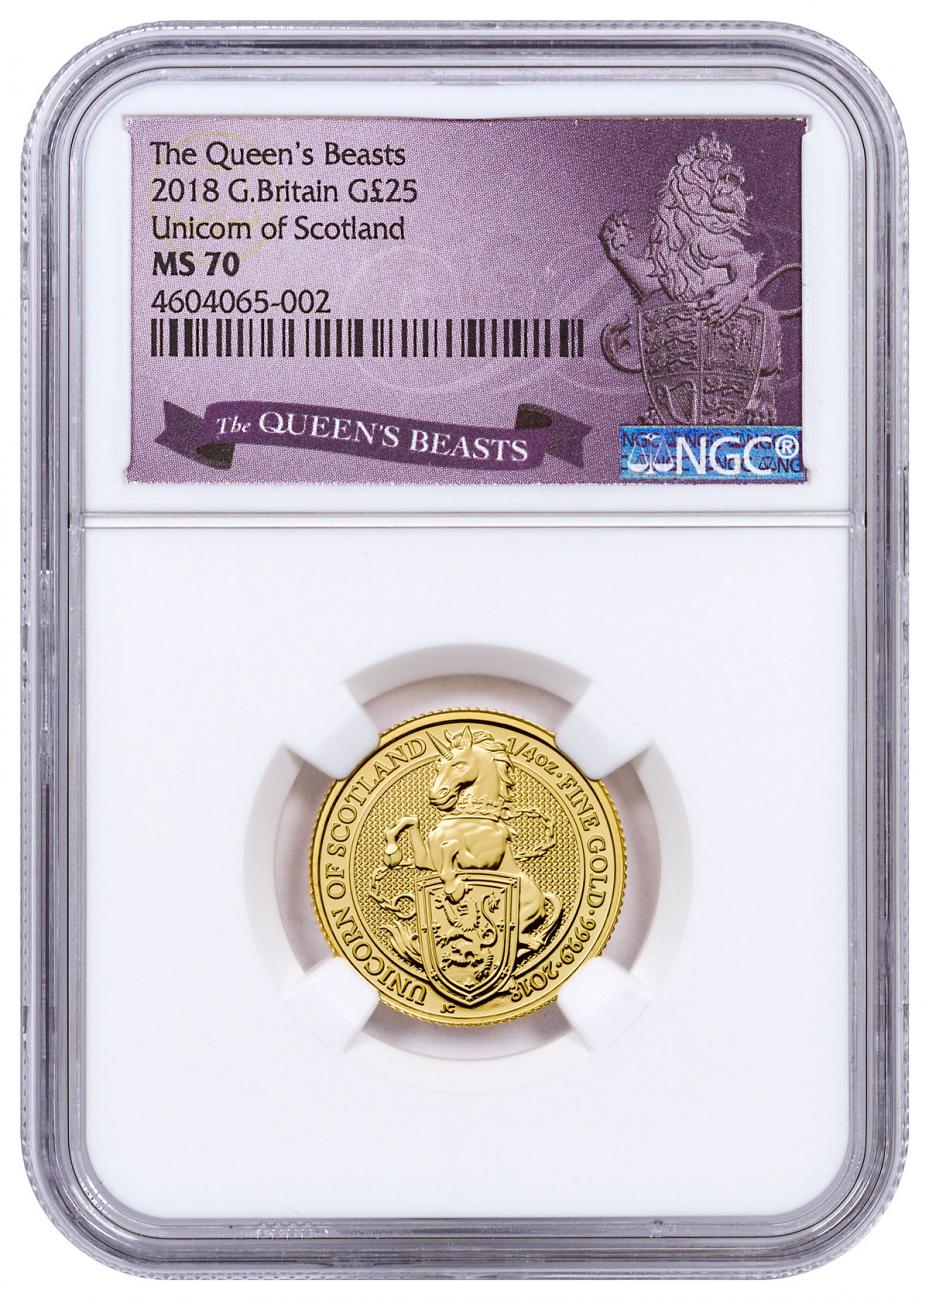 2018 Great Britain 1/4 oz Gold Queen's Beasts - The Unicorn of Scotland £25 Coin NGC MS70 Exclusive Queens Beasts Label